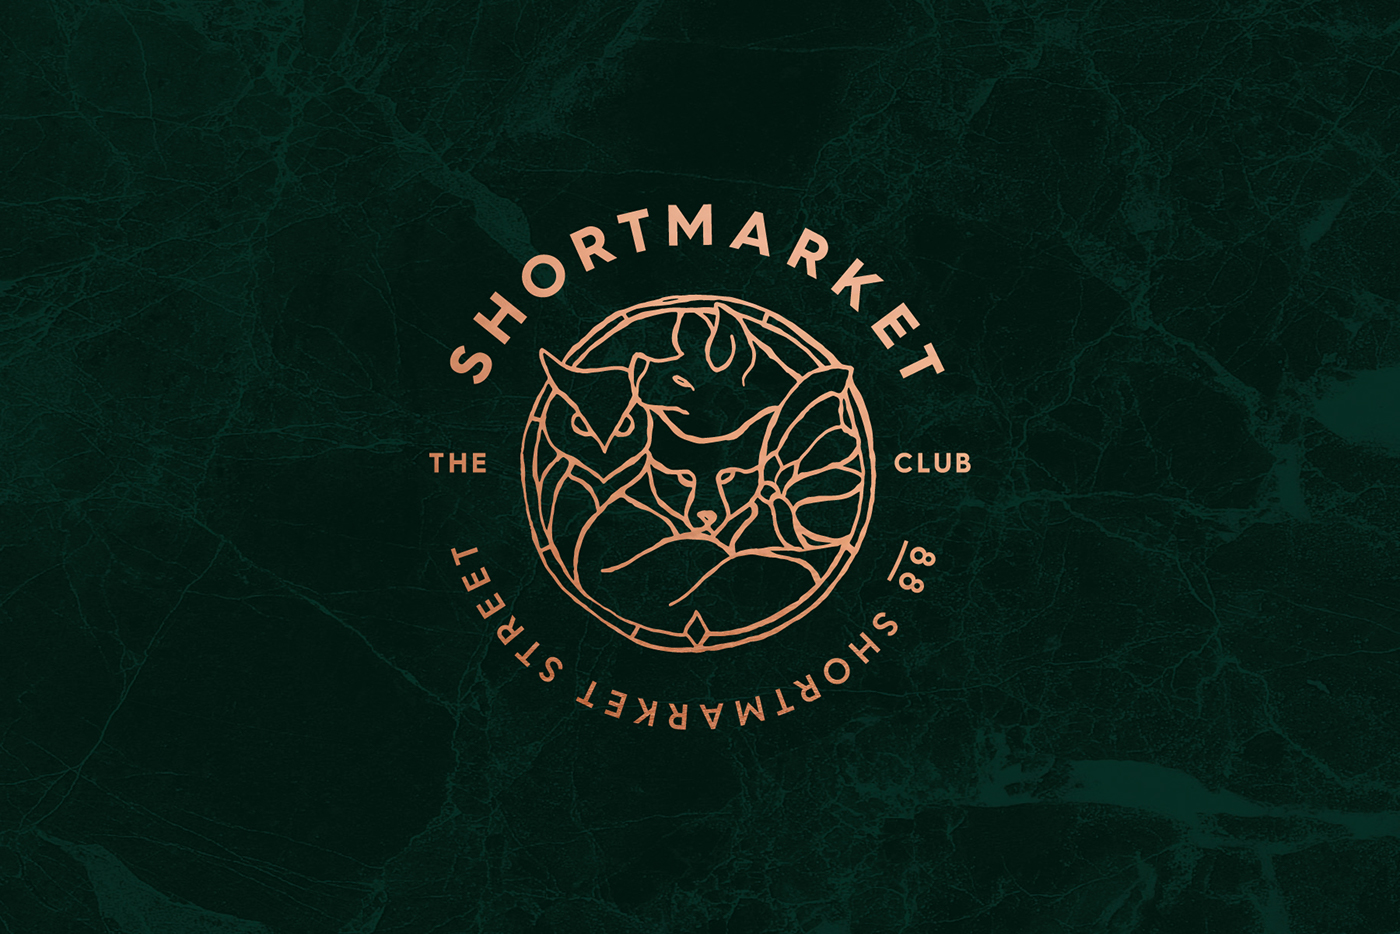 the shortmarket club main